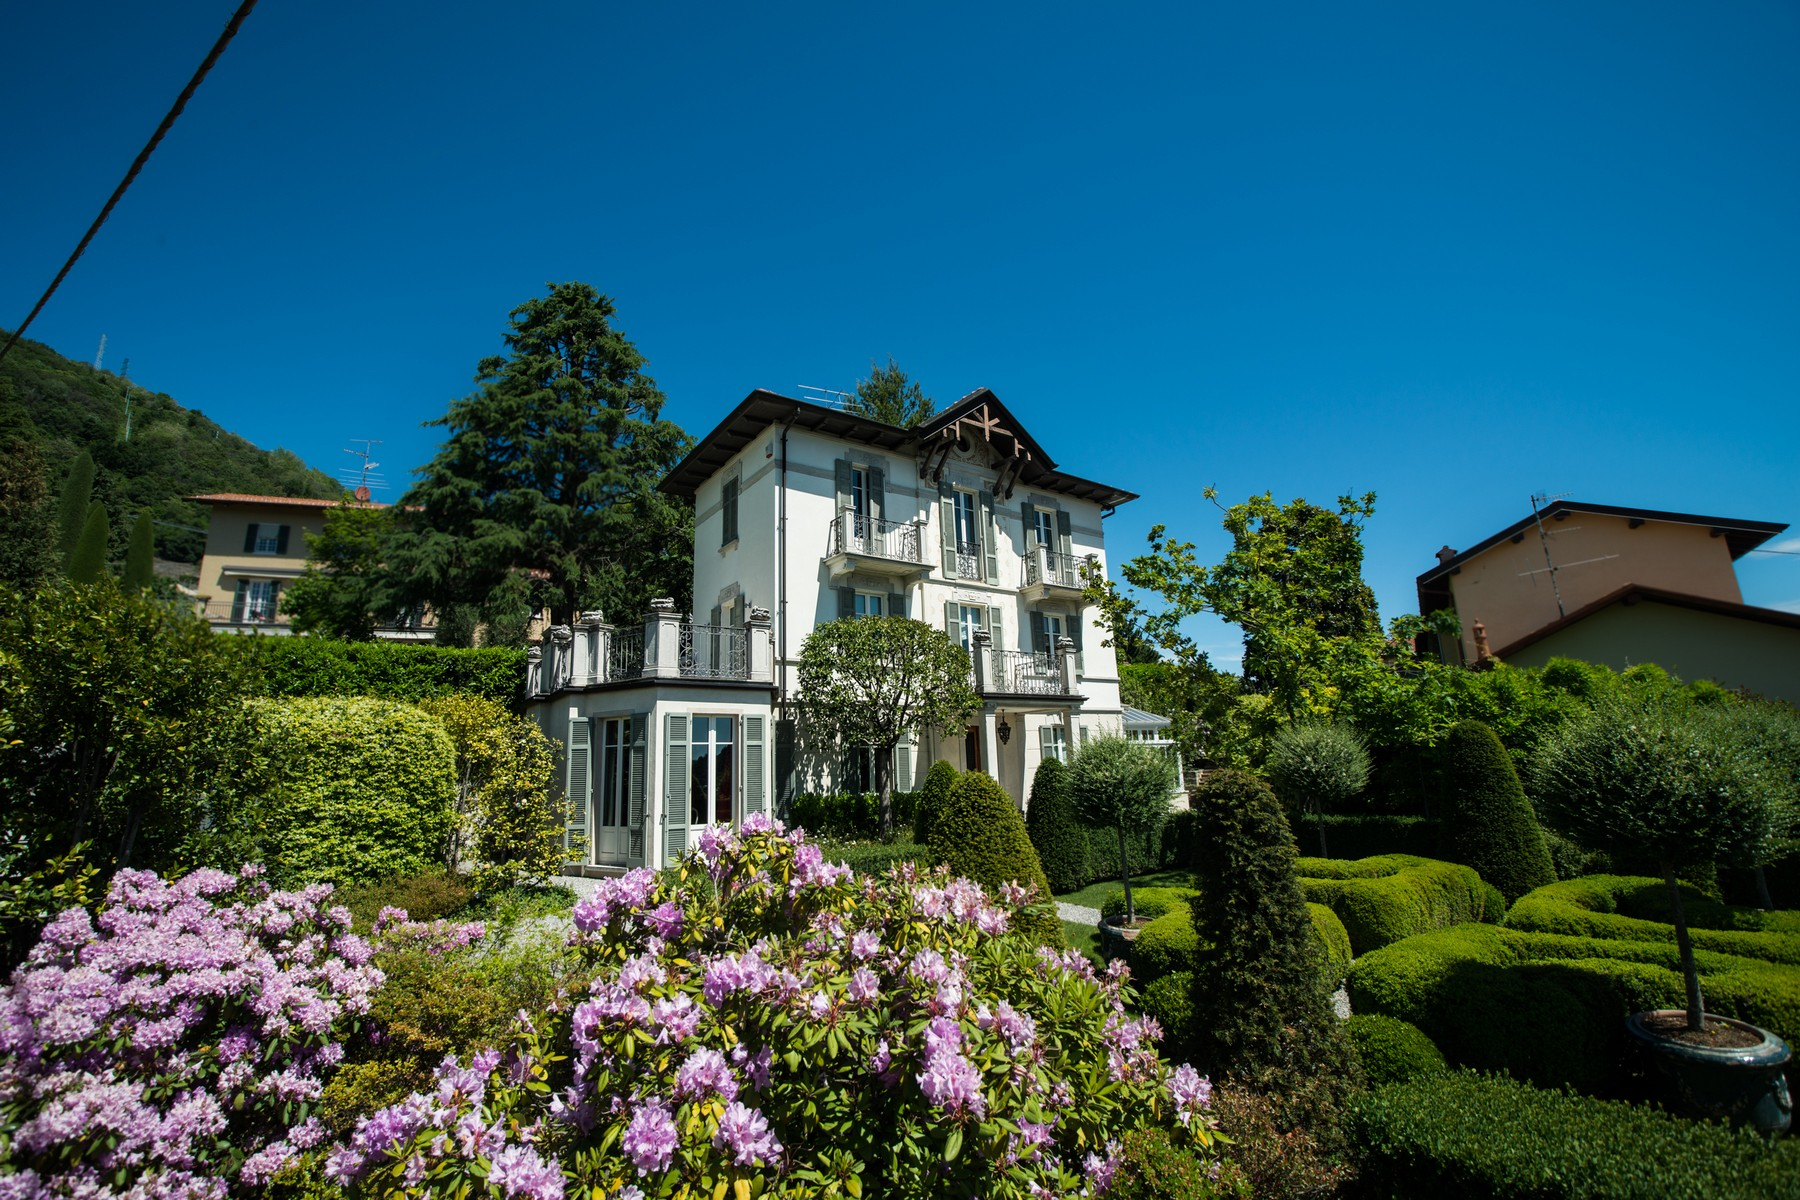 Additional photo for property listing at Gorgeous villa with dependance overlooking Lake Como Via Vittorio Veneto Cernobbio, Como 22012 Italy